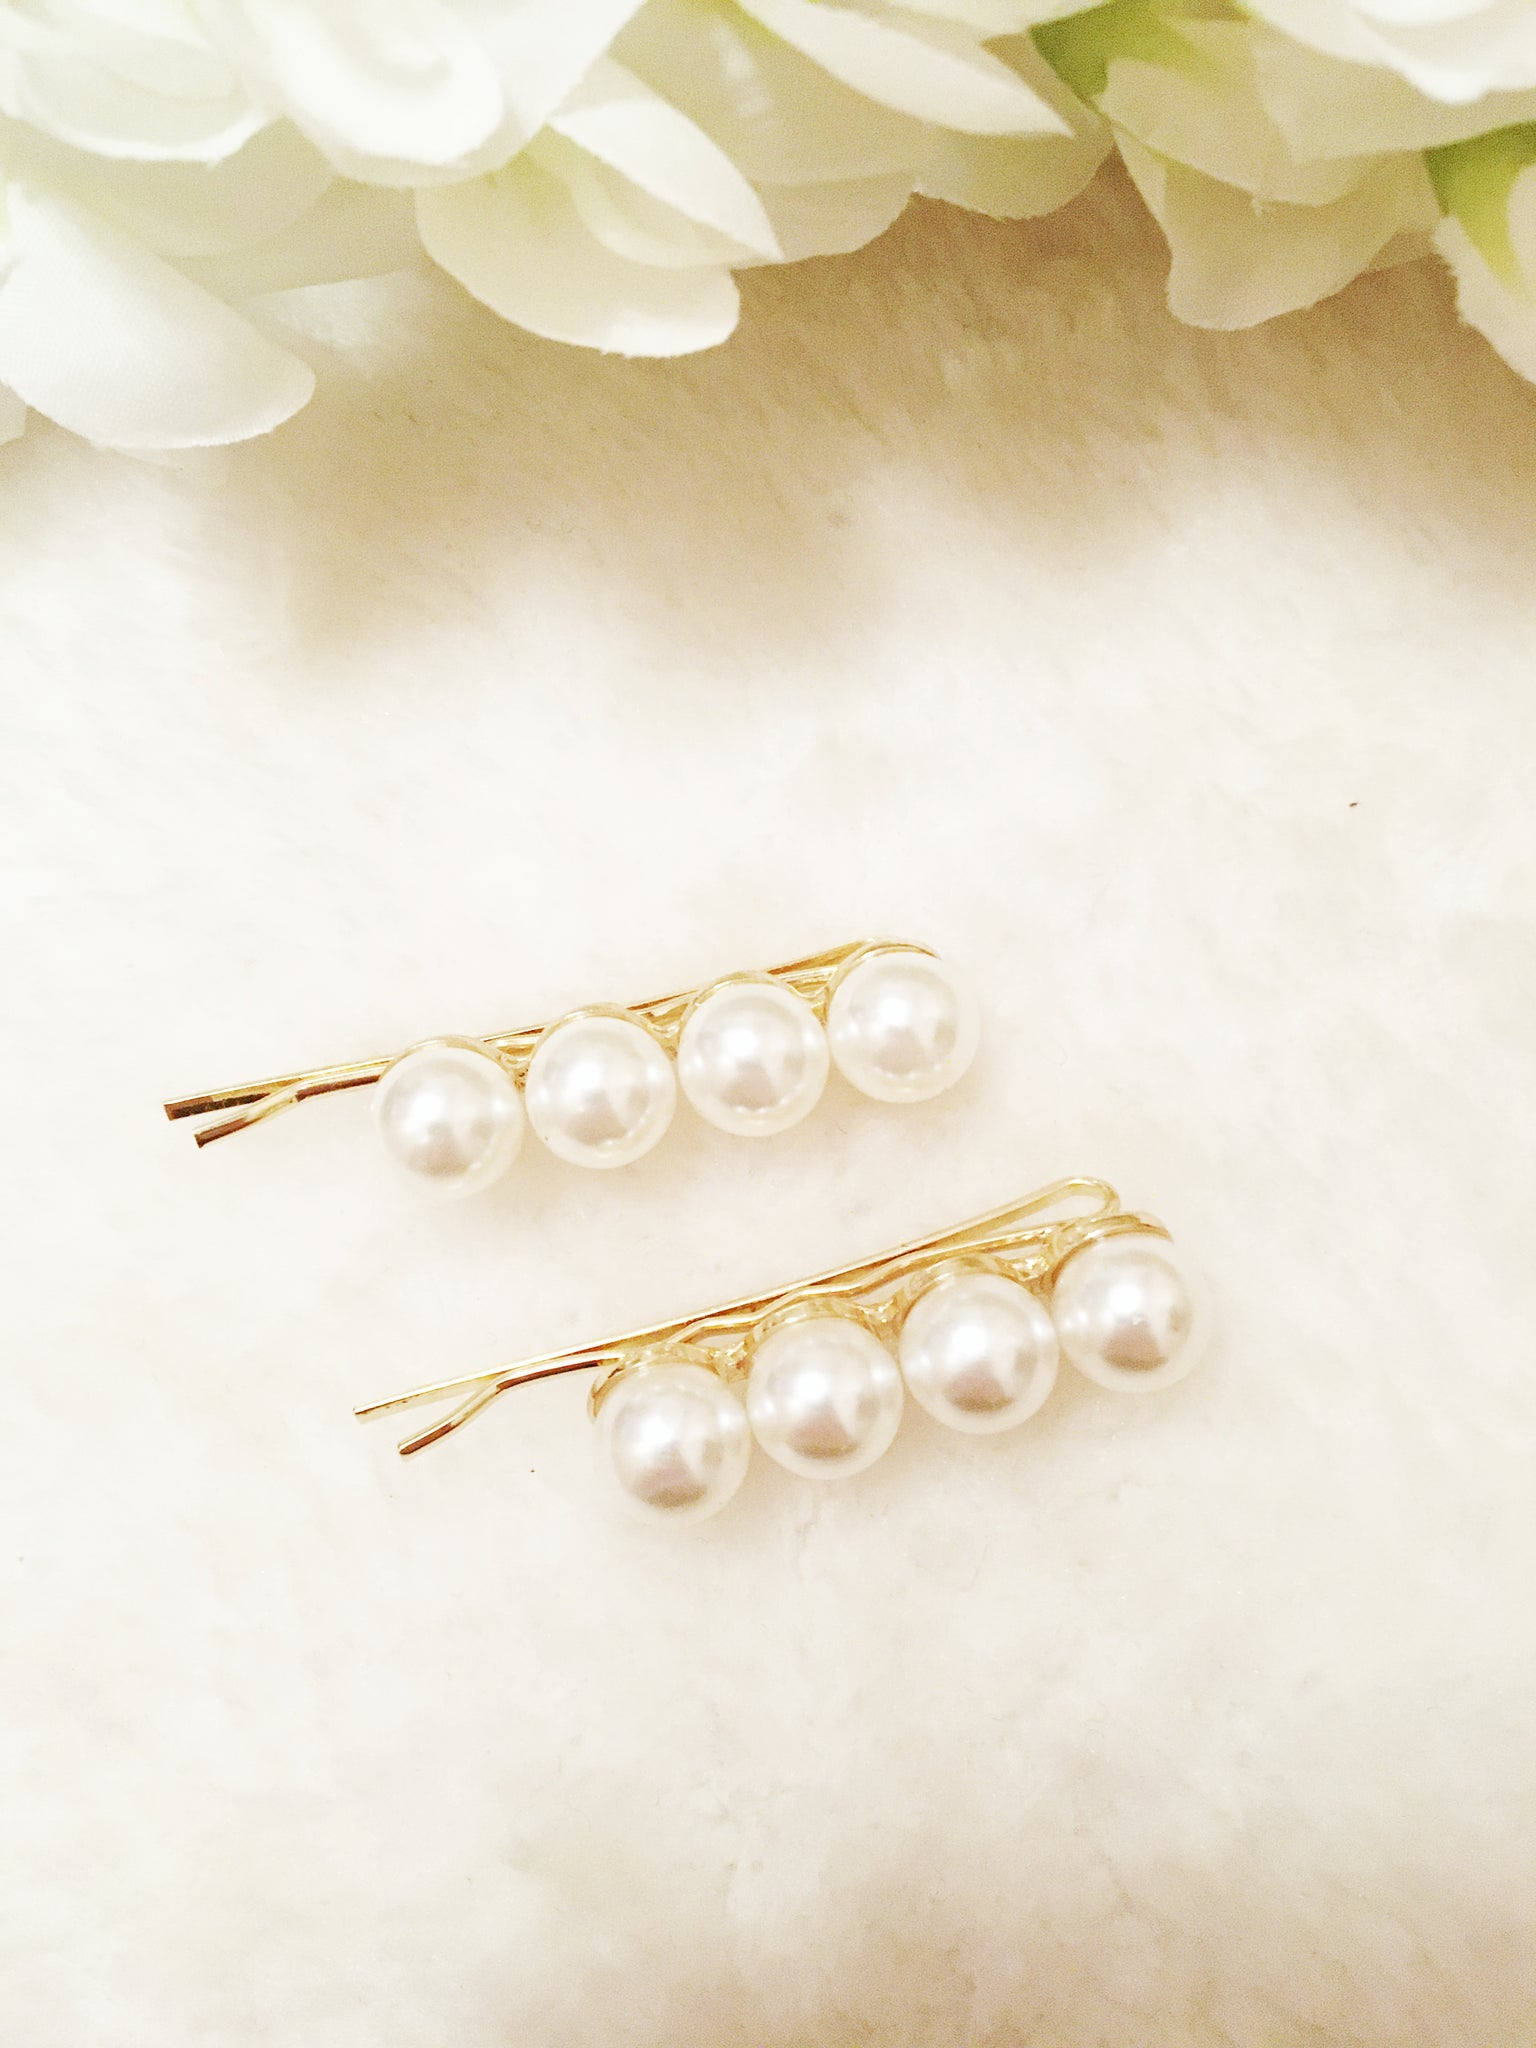 The 'Pearl Beads' Hair slides